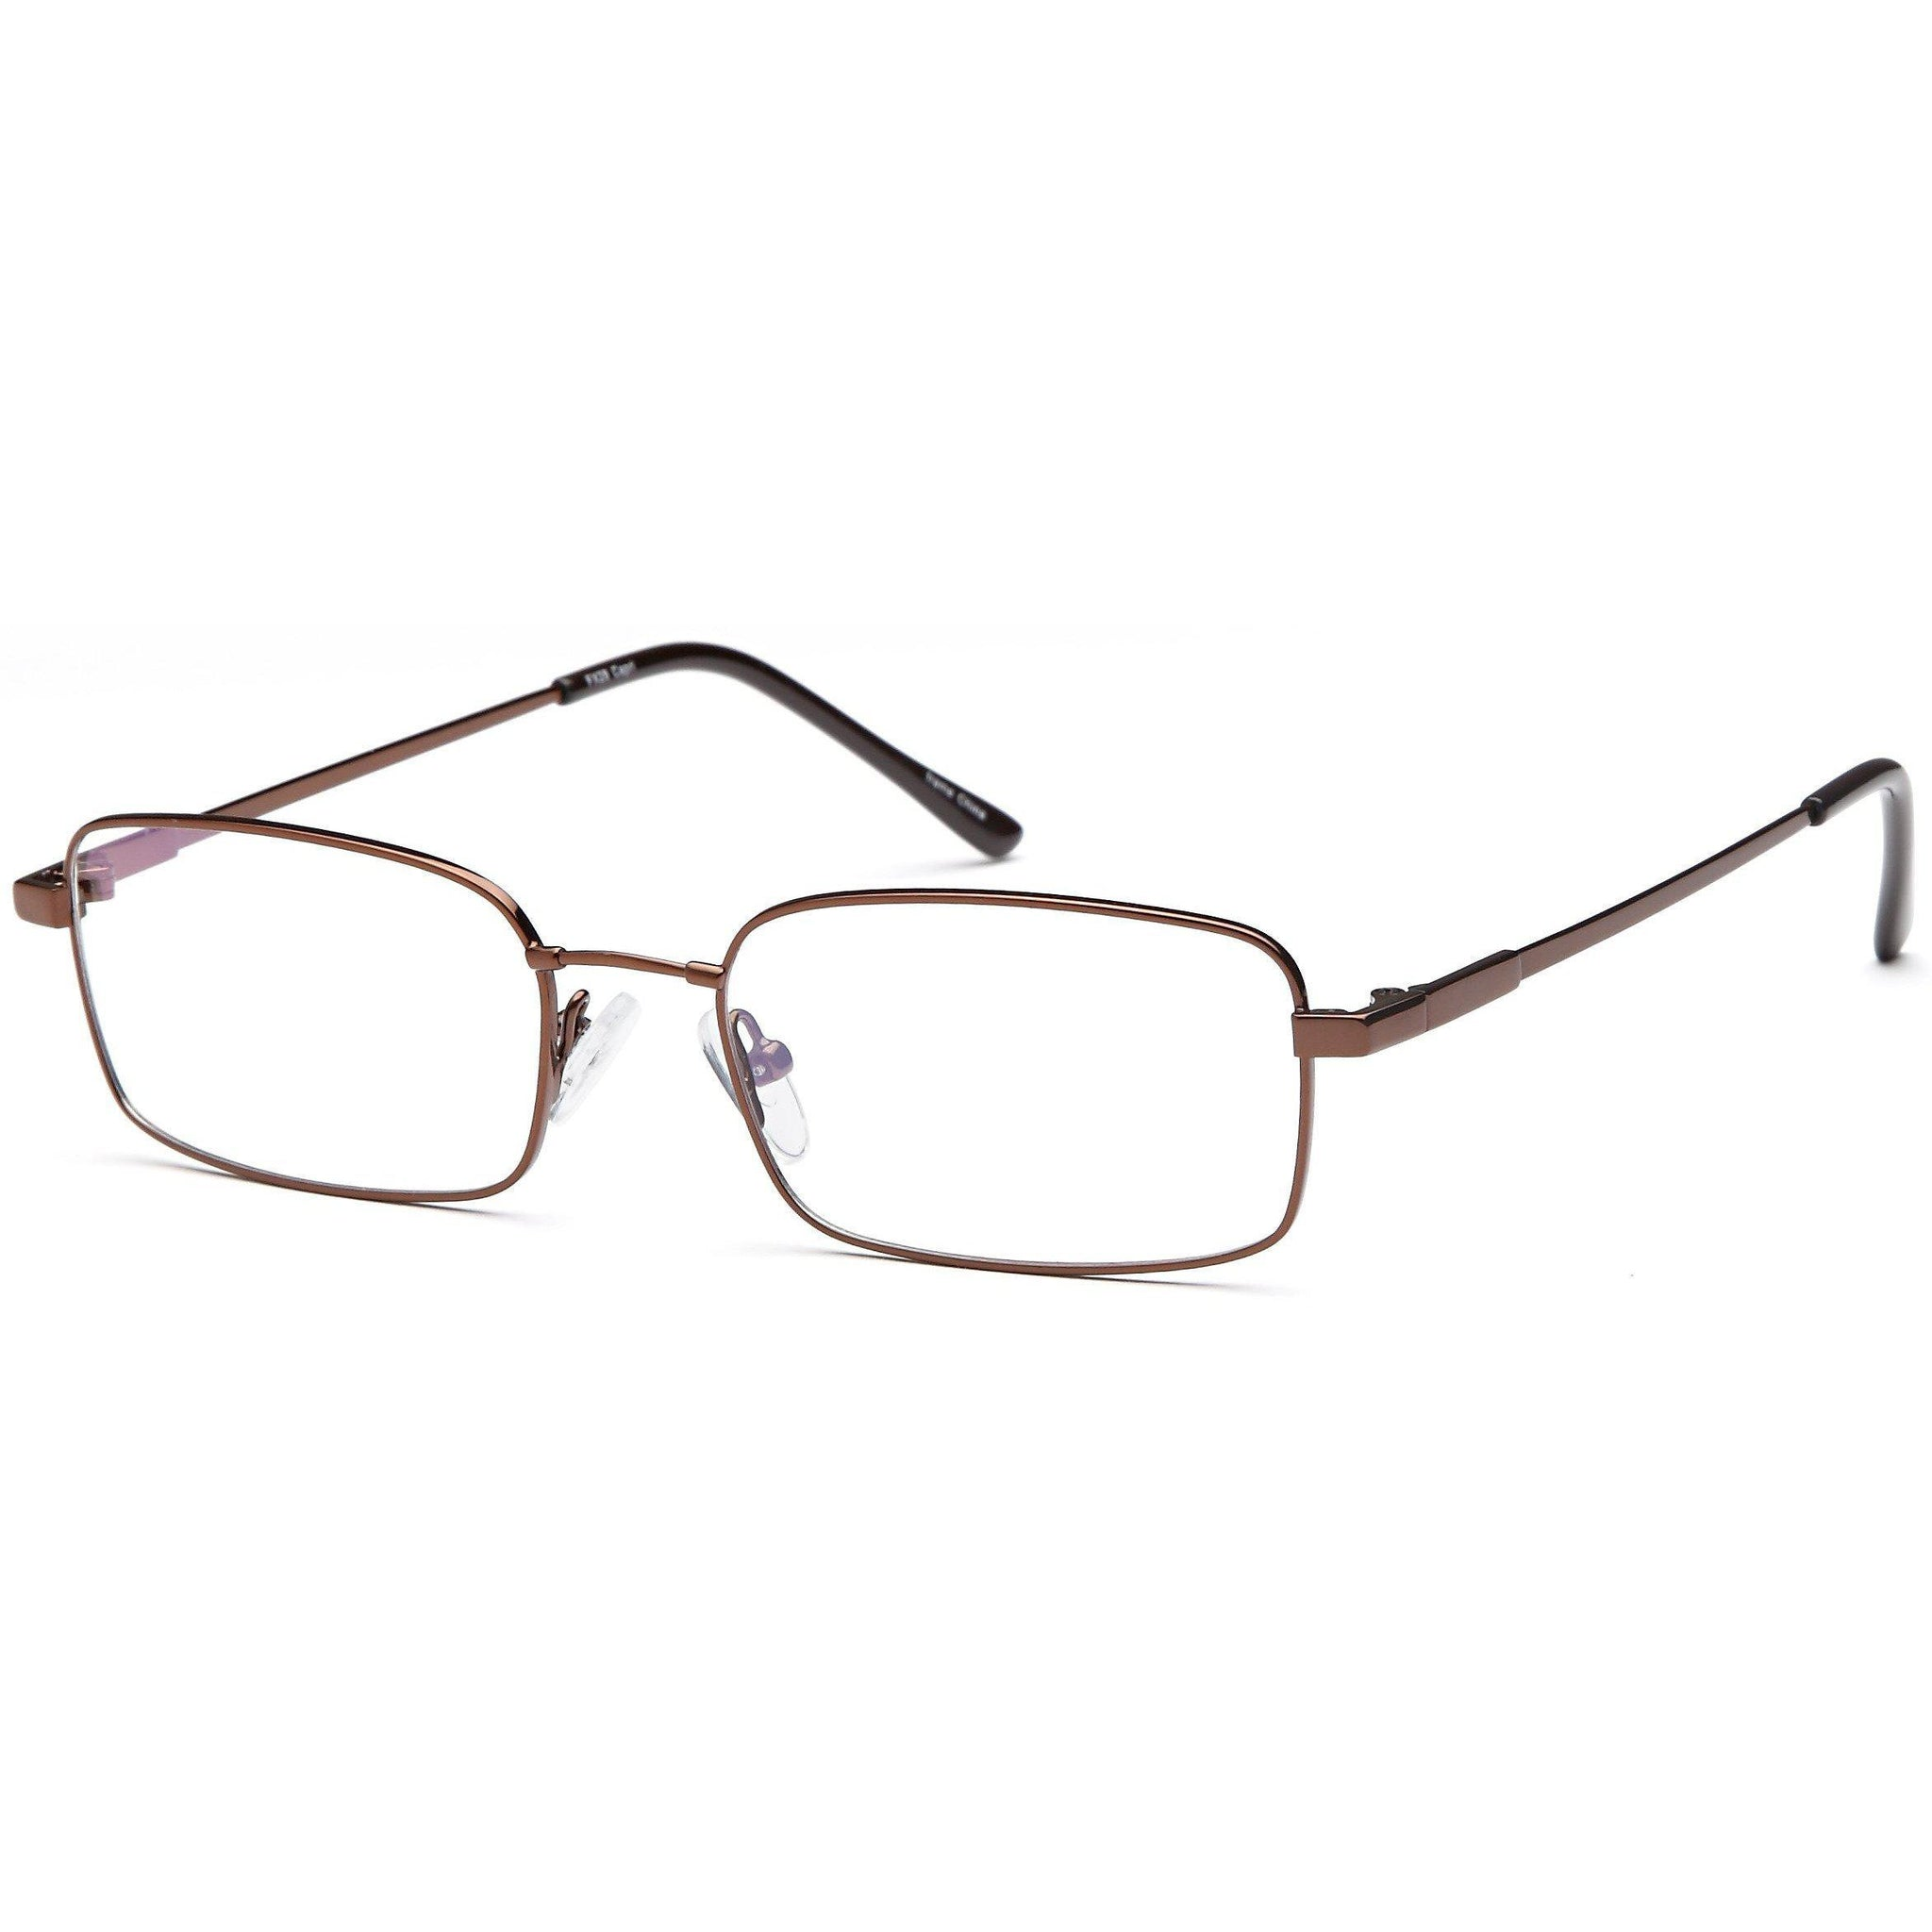 Titanium Prescription Glasses FX 28 Eyeglasses Frame